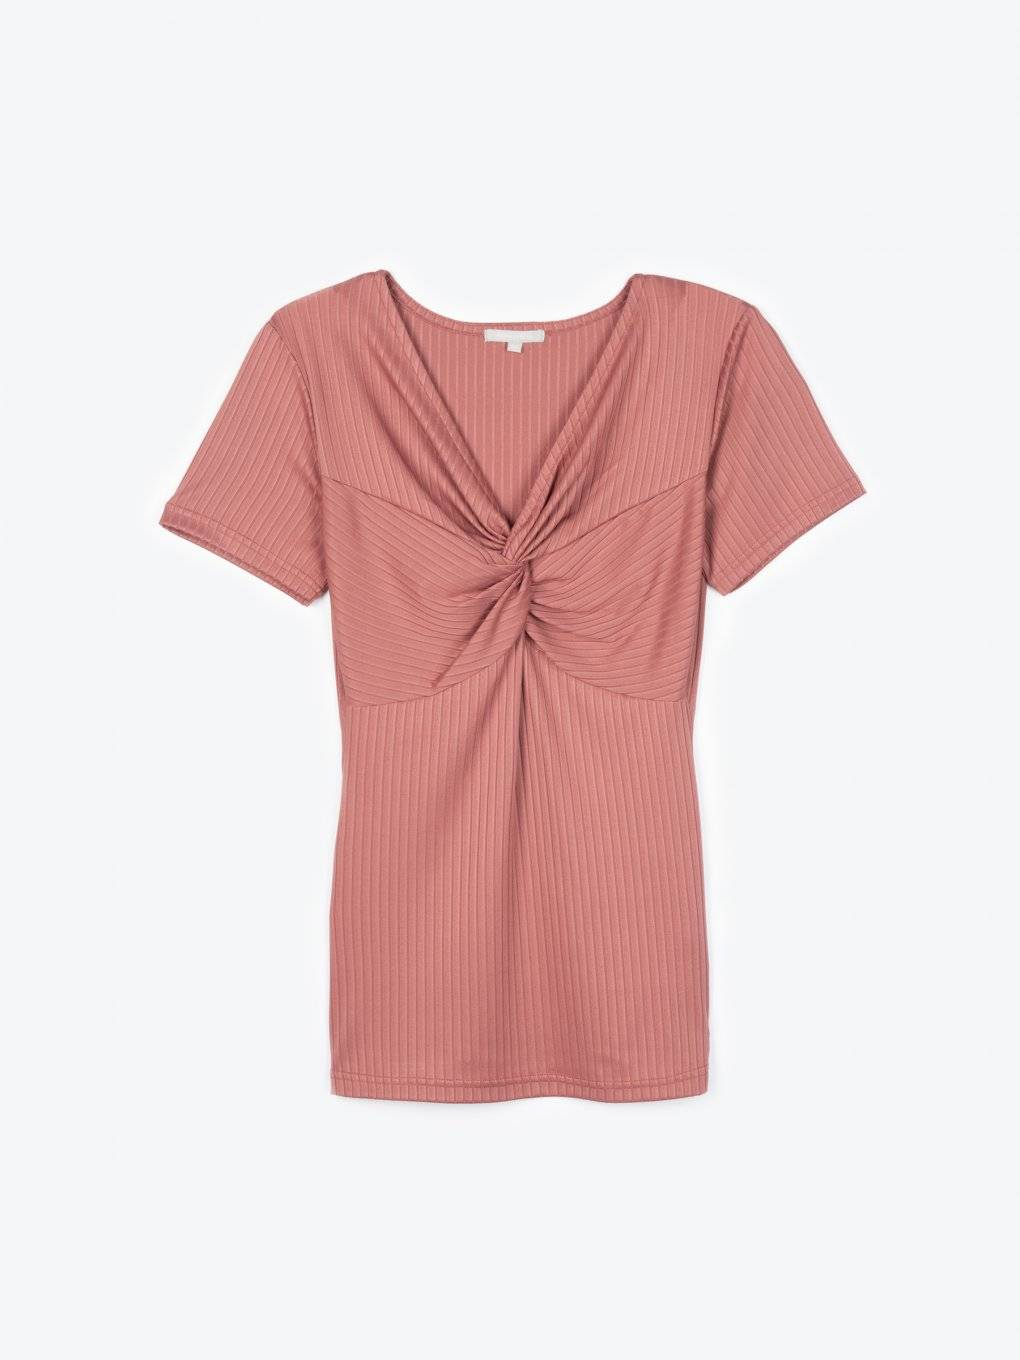 Ribbed short sleeve top with knot